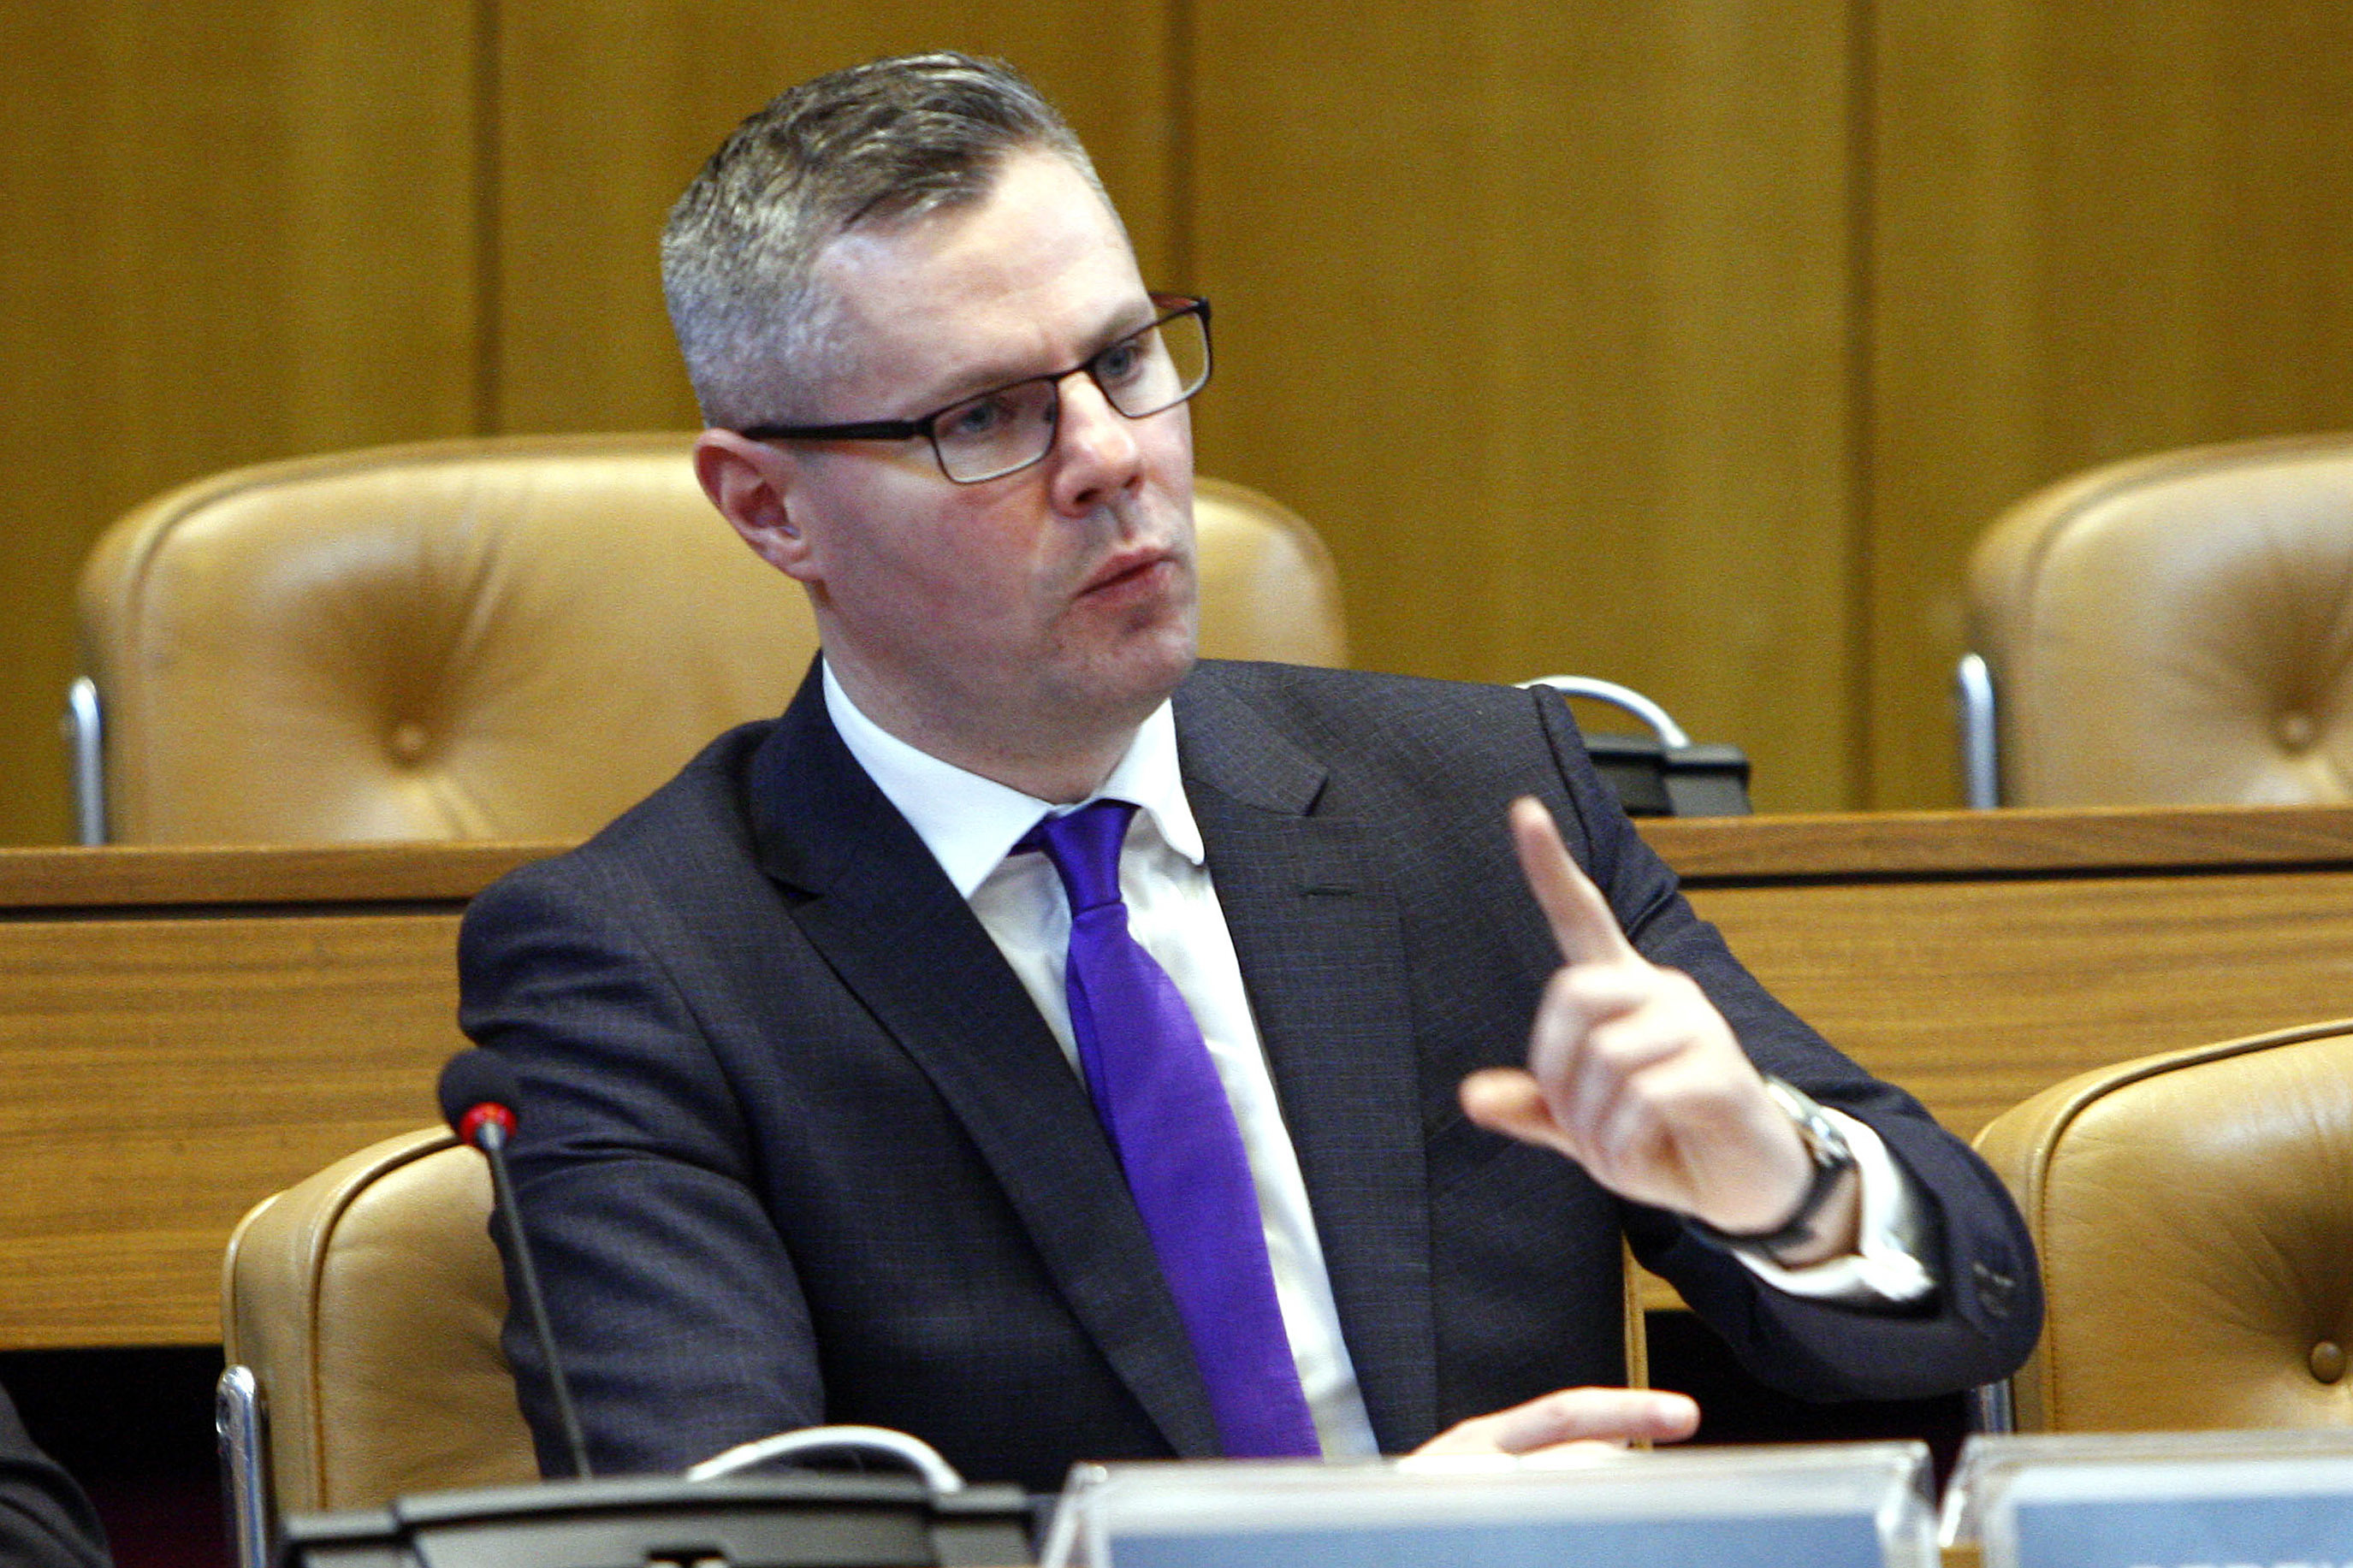 Derek MacKay MSP  (Pictured) at Aberdeen Council Chambers in Aberdeen Town House